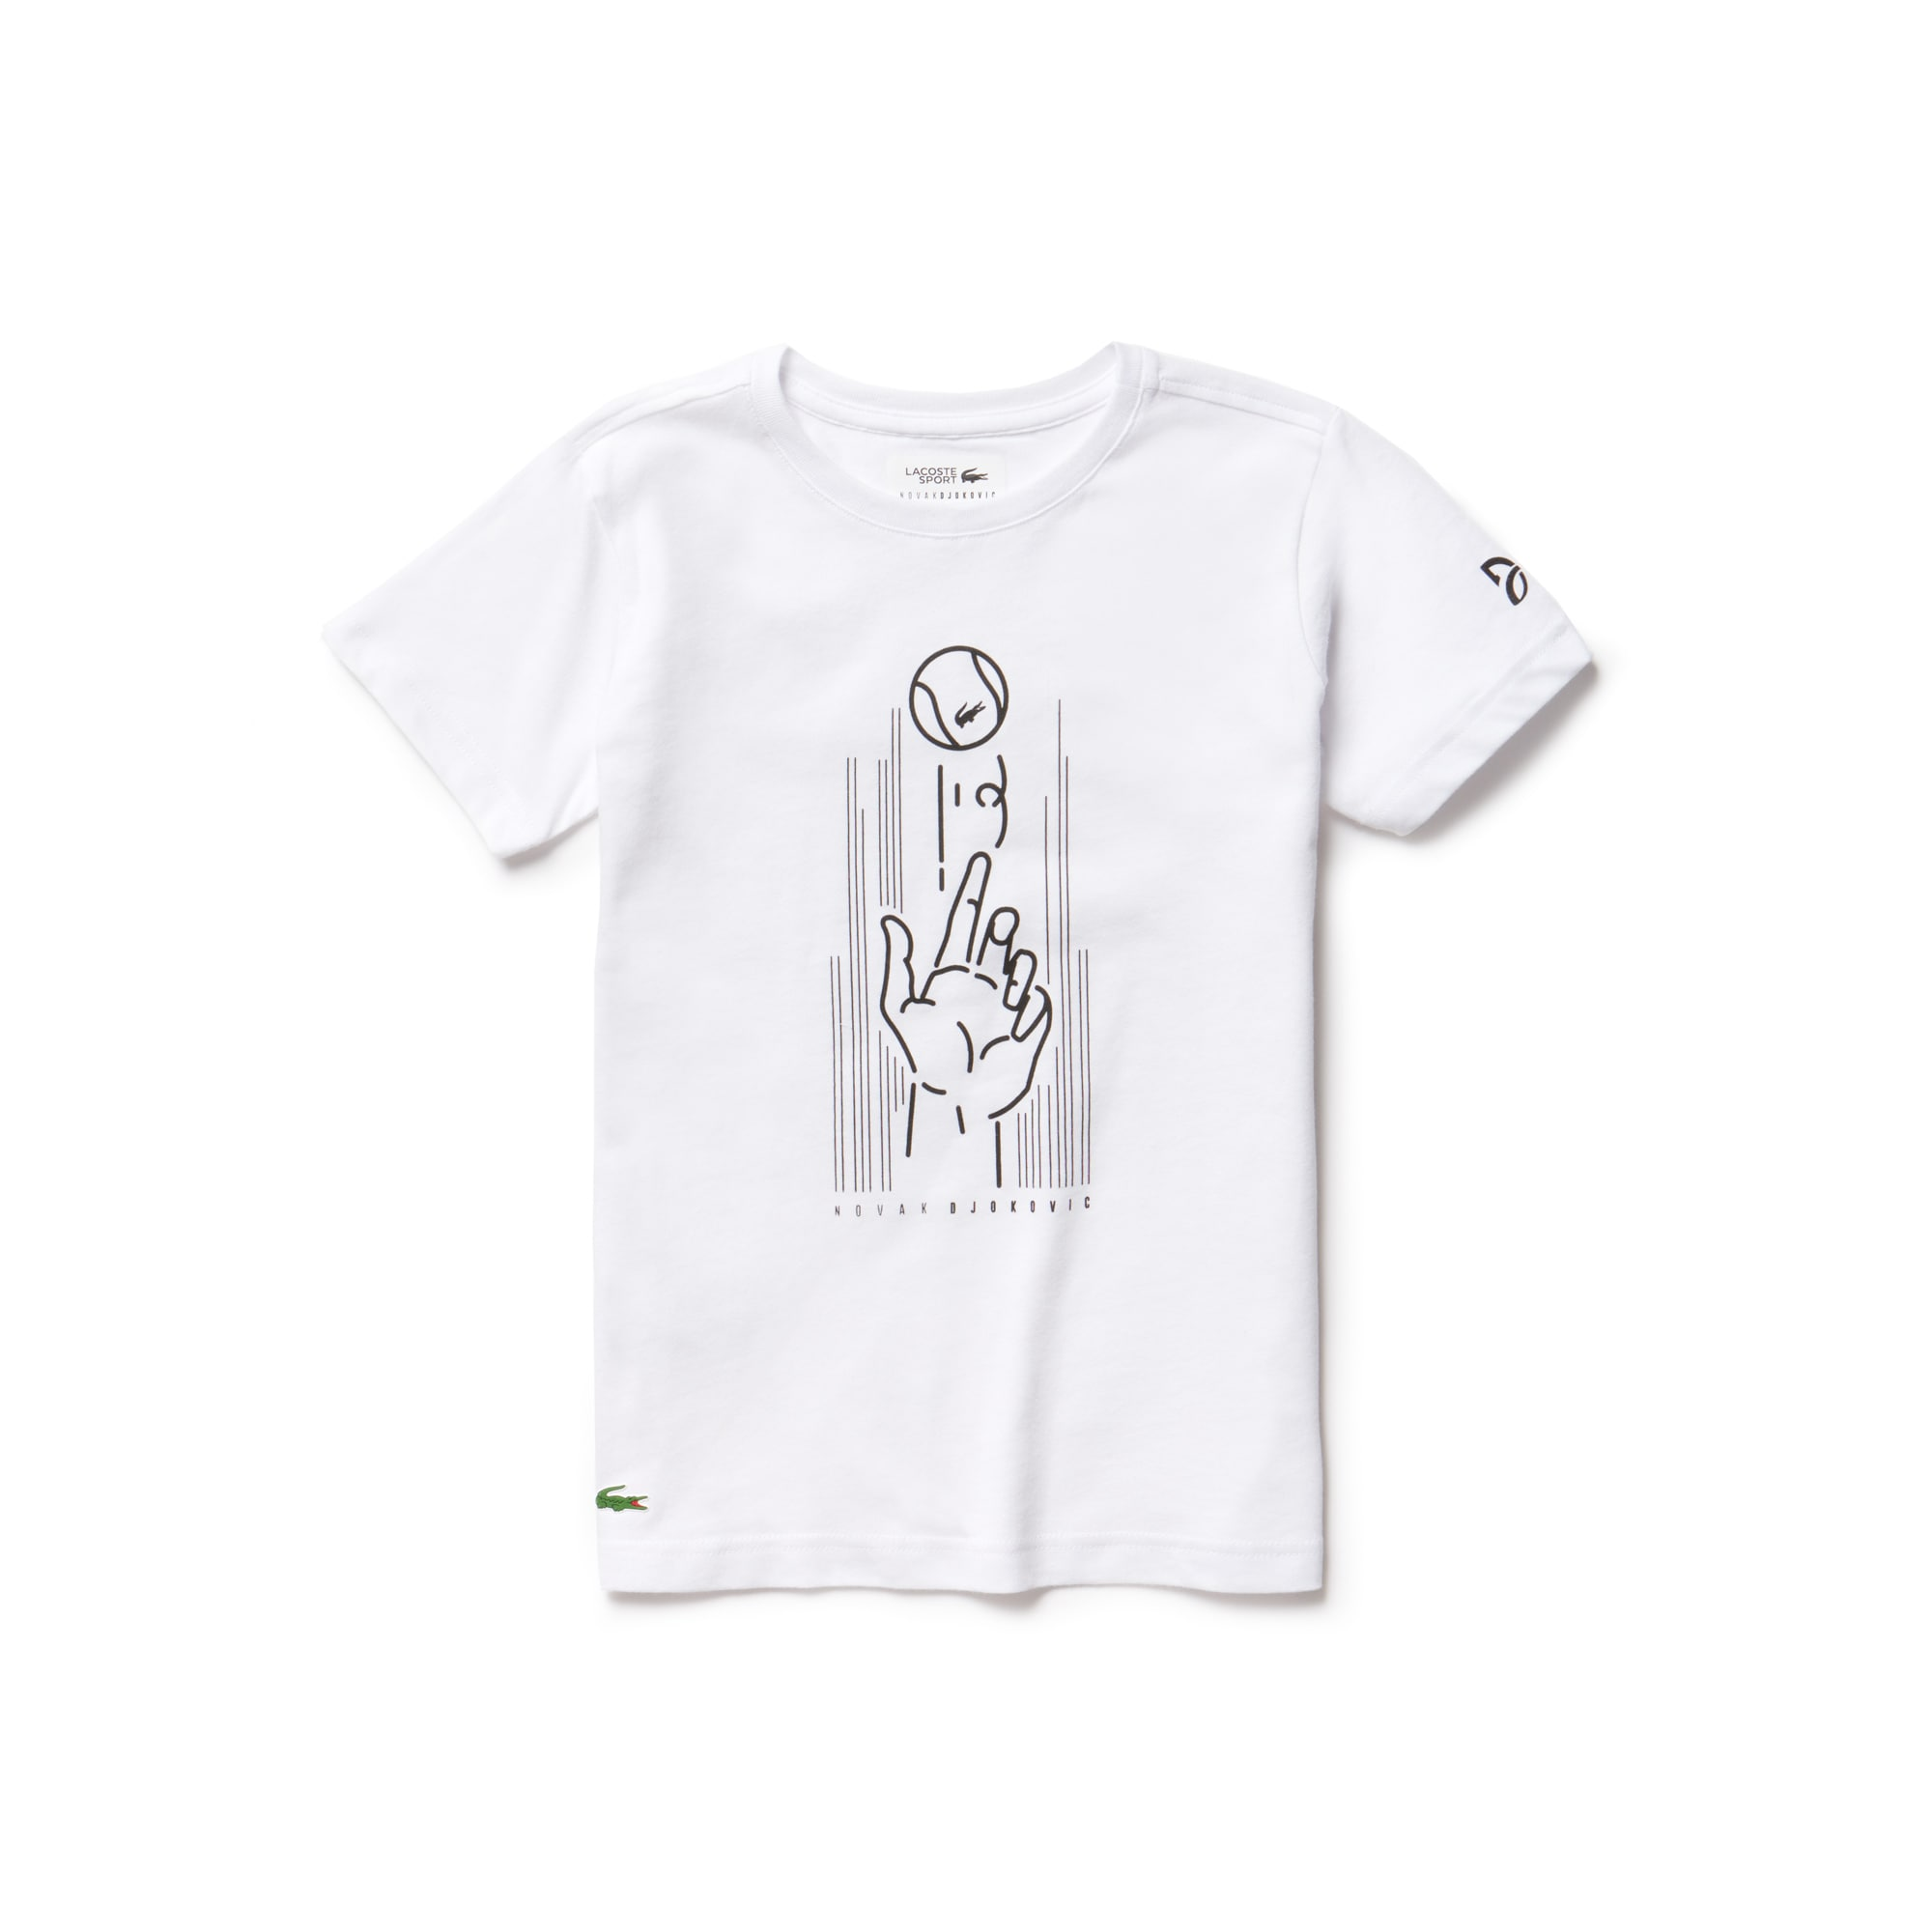 Boys' Lacoste SPORT NOVAK DJOKOVIC SUPPORT WITH STYLE - OFF COURT COLLECTION Print Technical Jersey T-shirt